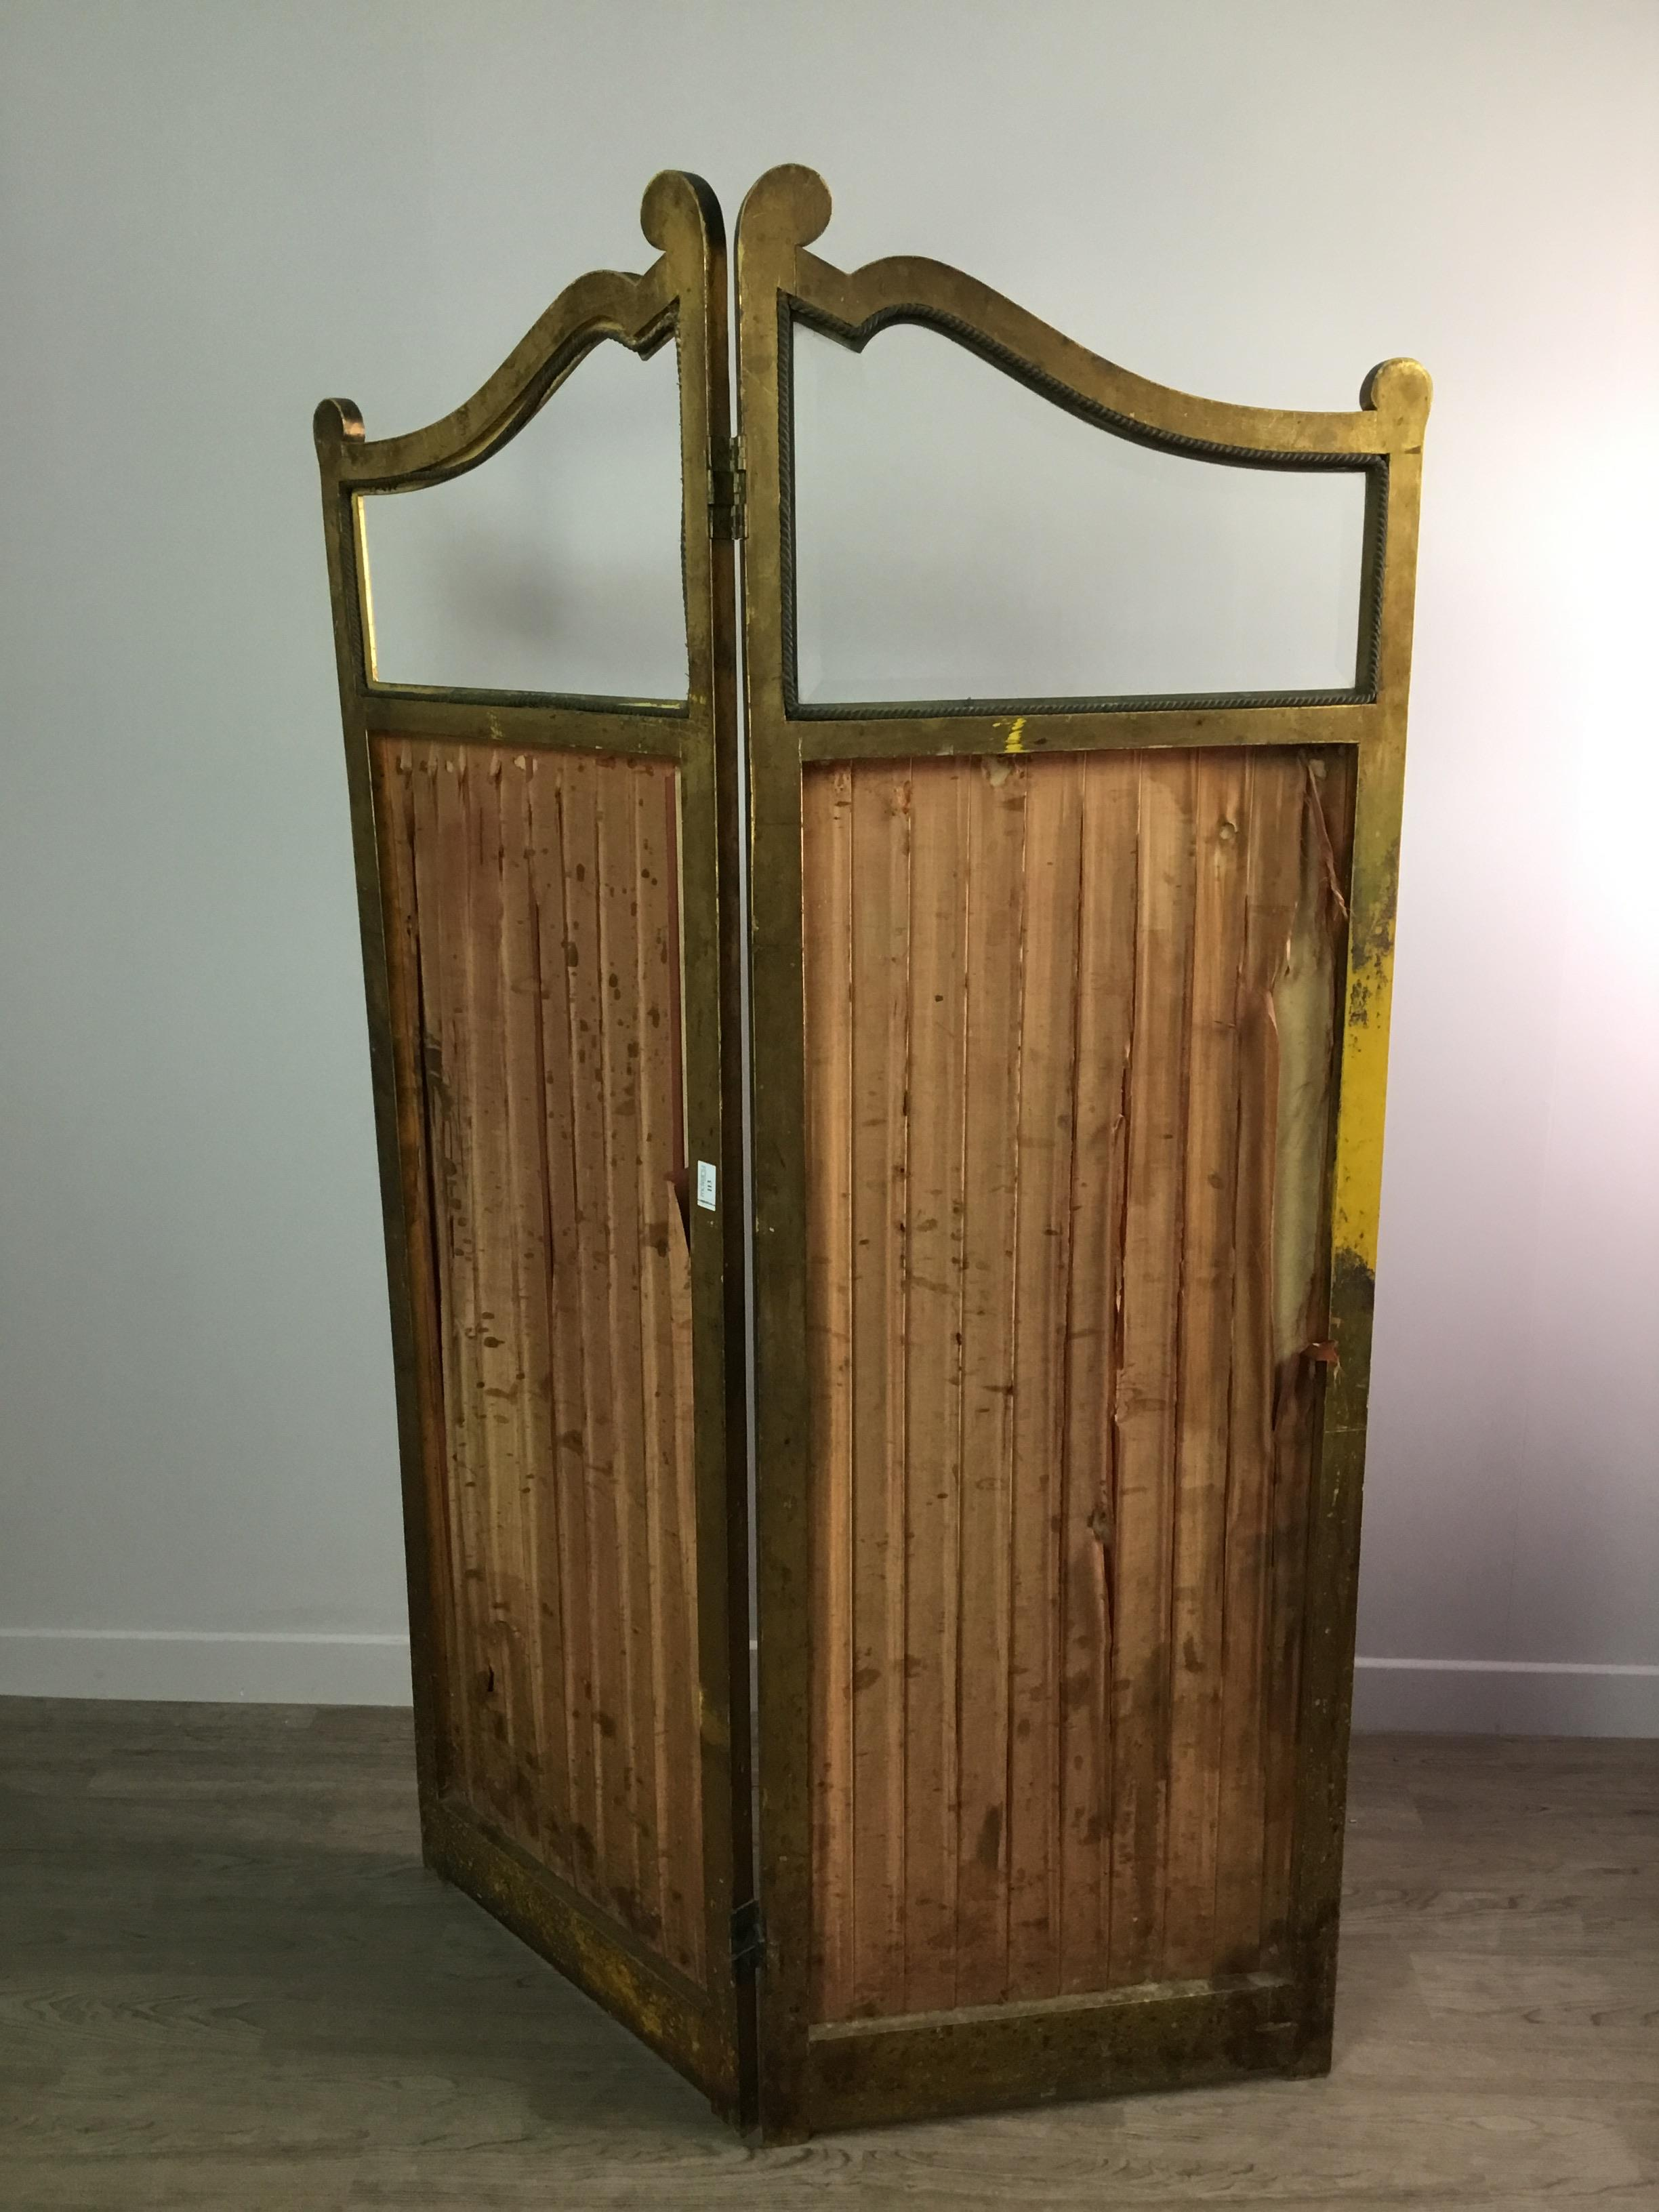 A LATE VICTORIAN GILTWOOD TWO PANEL DRESSING SCREEN - Image 4 of 4